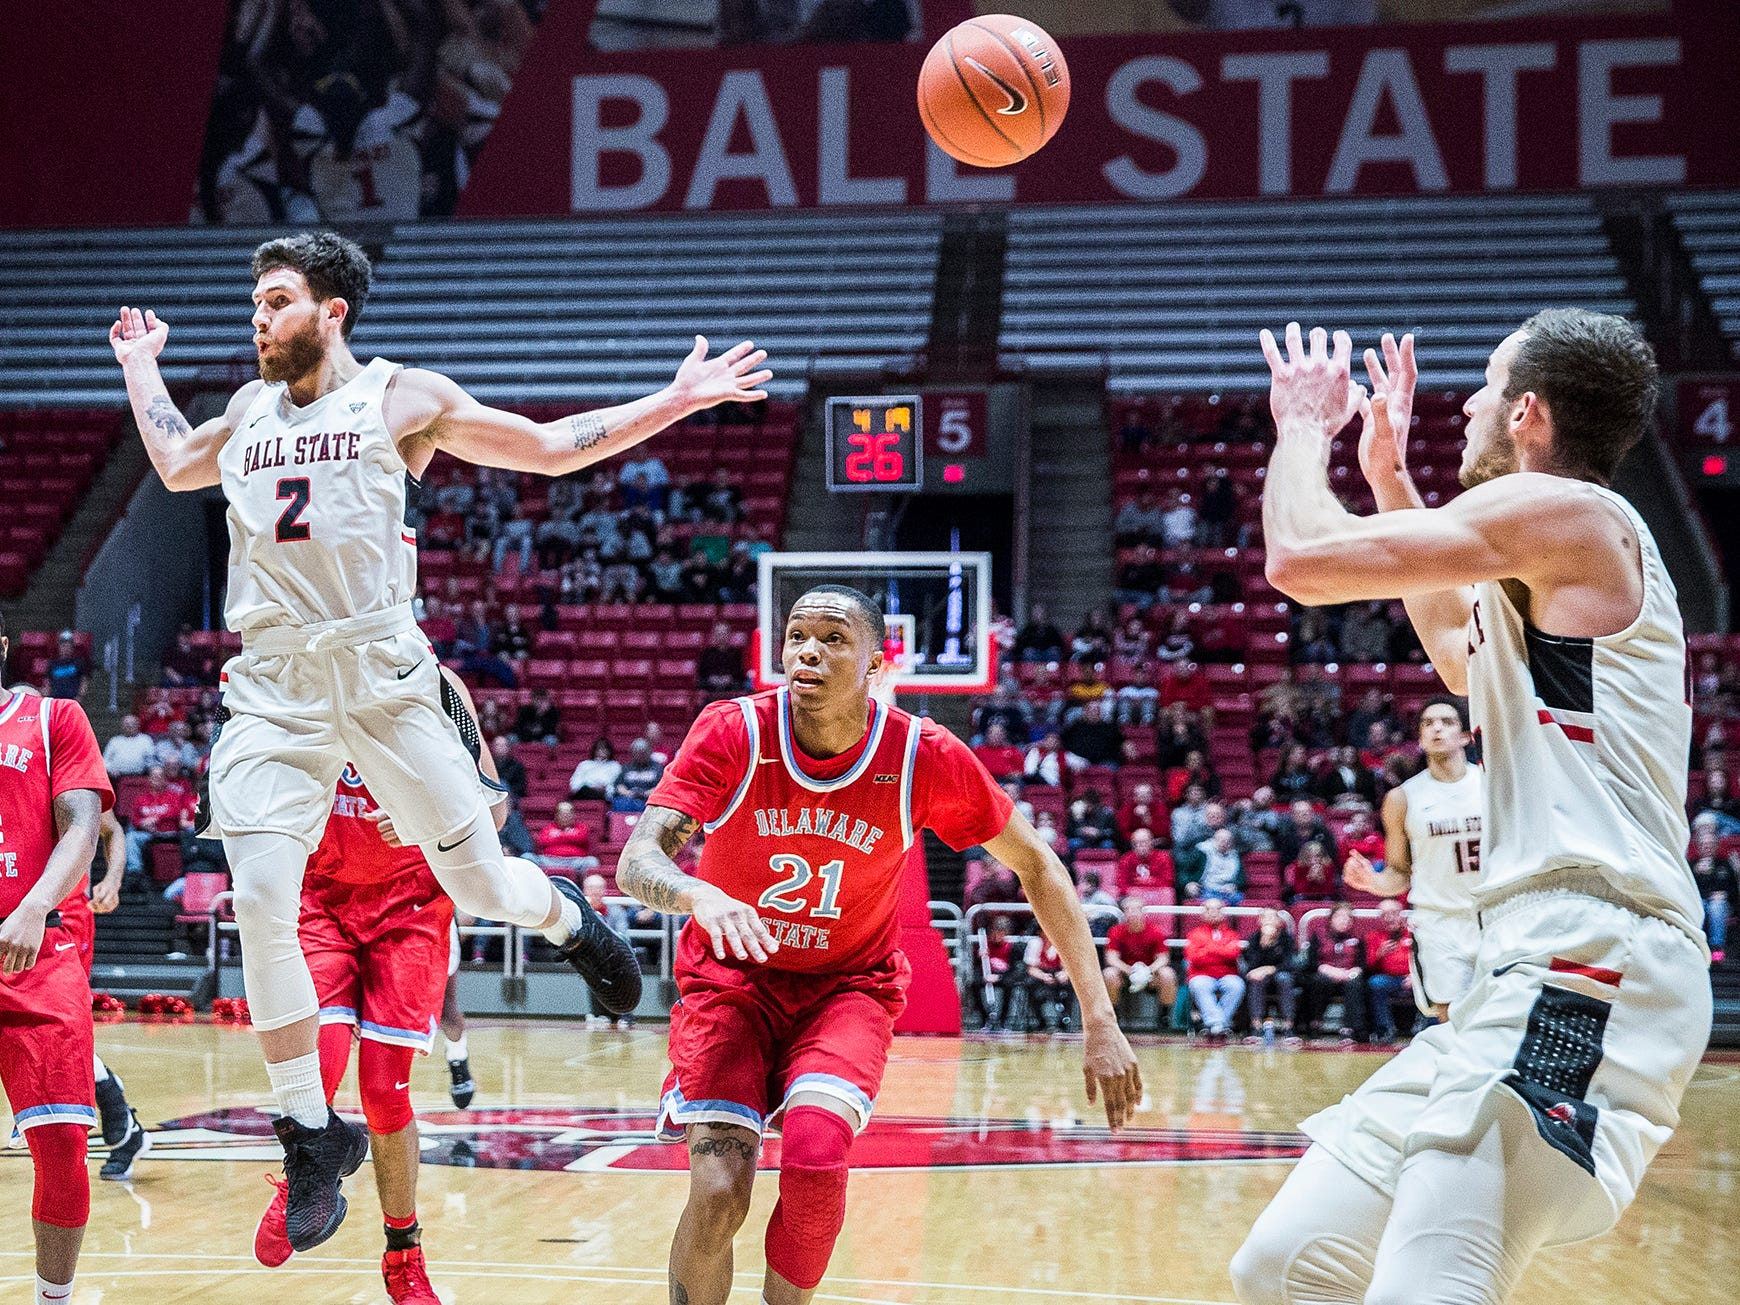 Ball State's Tayler Persons passes  past Delaware State's defense during their game at Worthen Arena Saturday, Dec. 29, 2018.